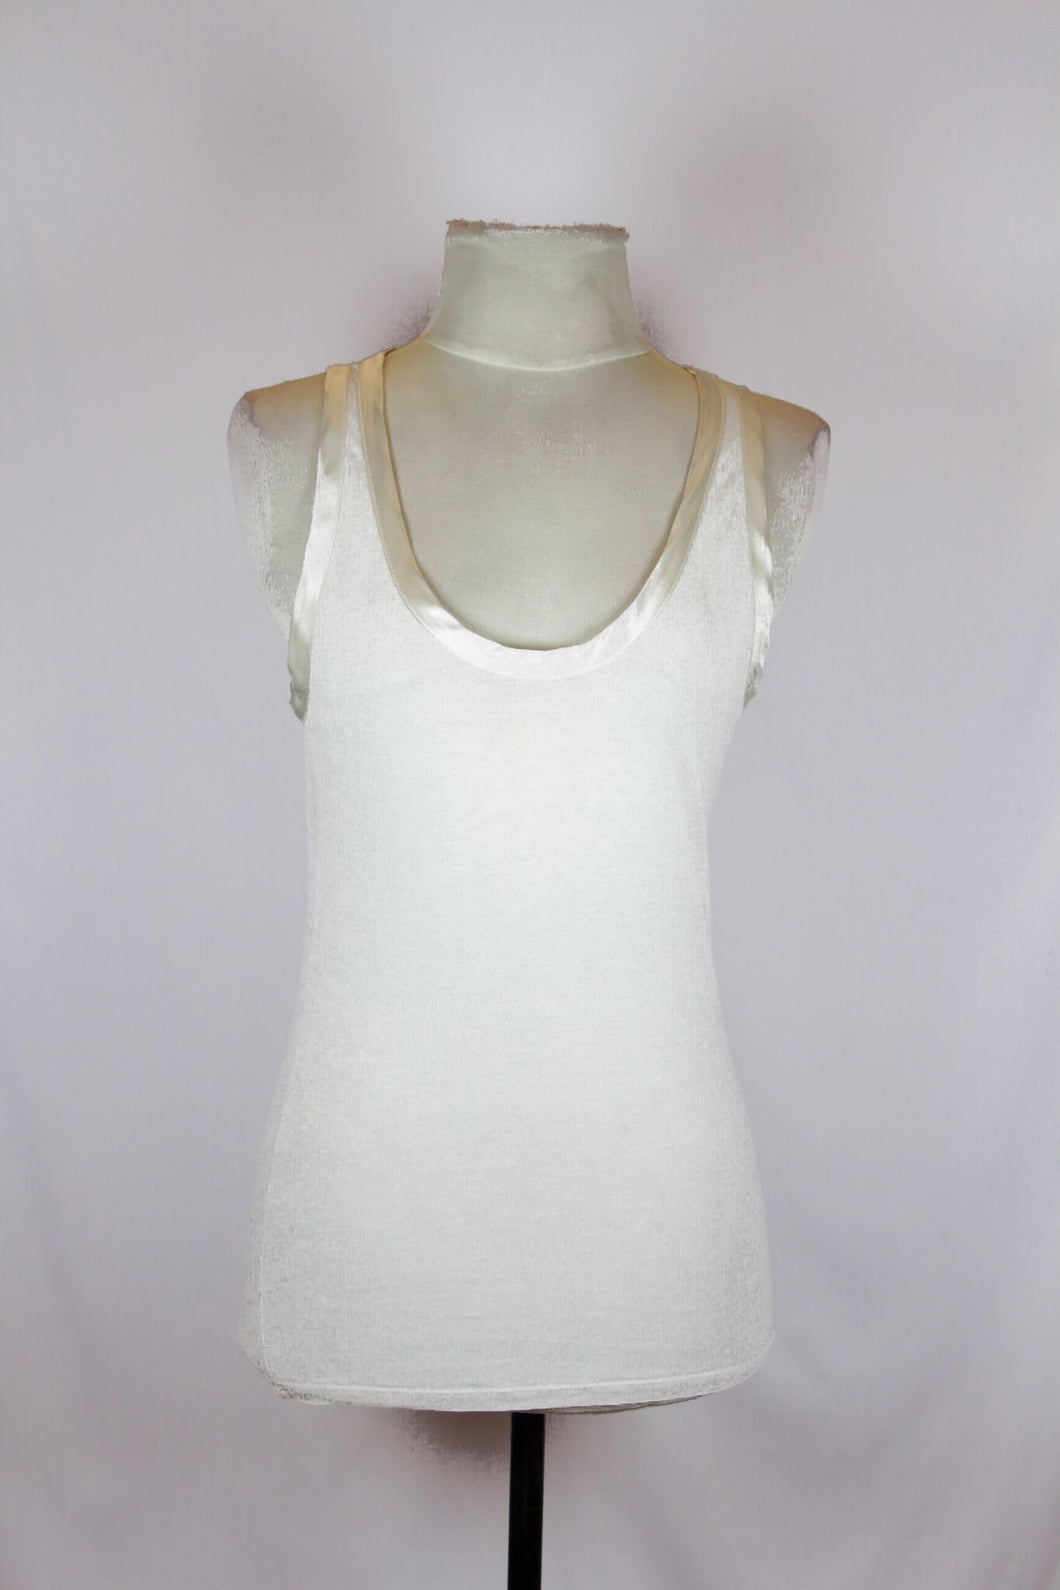 Zara White Lyocell Tank with Satin Trim